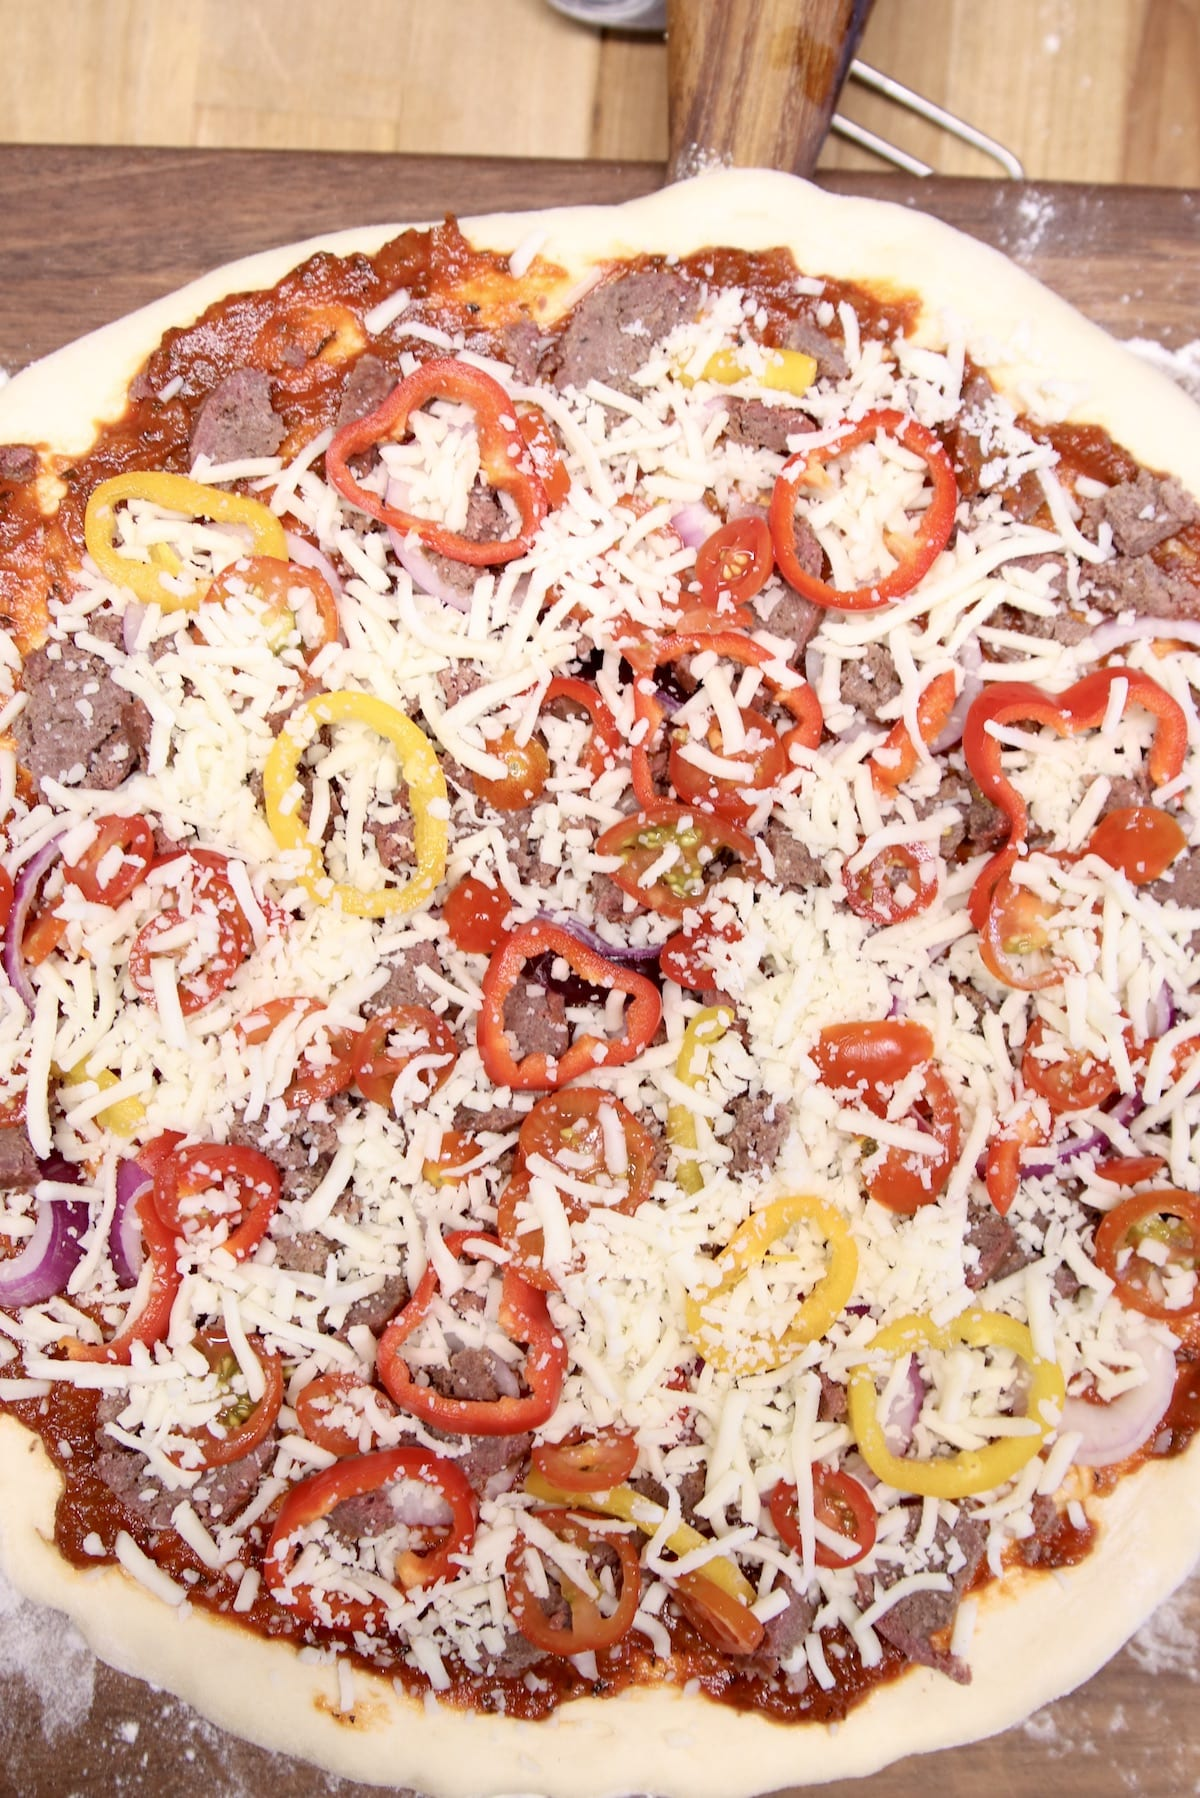 pizza with toppings - not baked